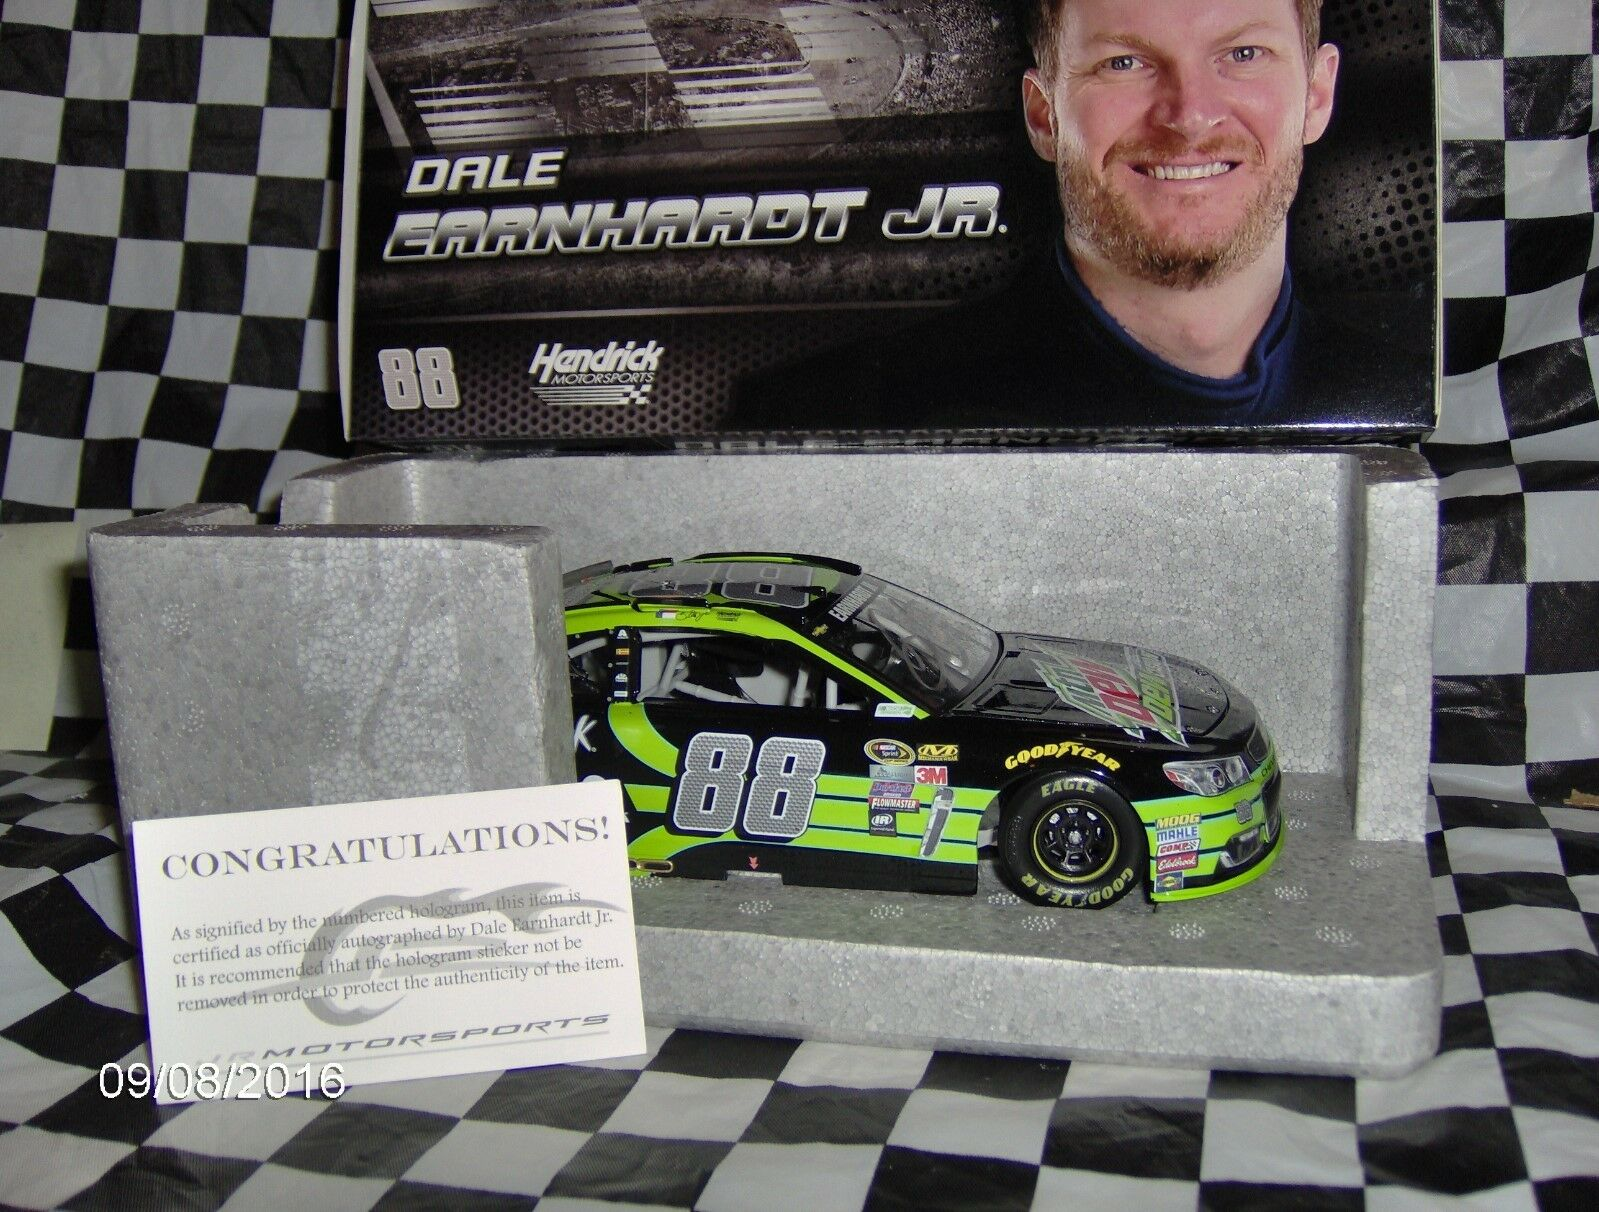 2016 Action Lionel DALE EARNHARDT JR Nº 88 Mountain Dew autographié C.O.A 1 24th.